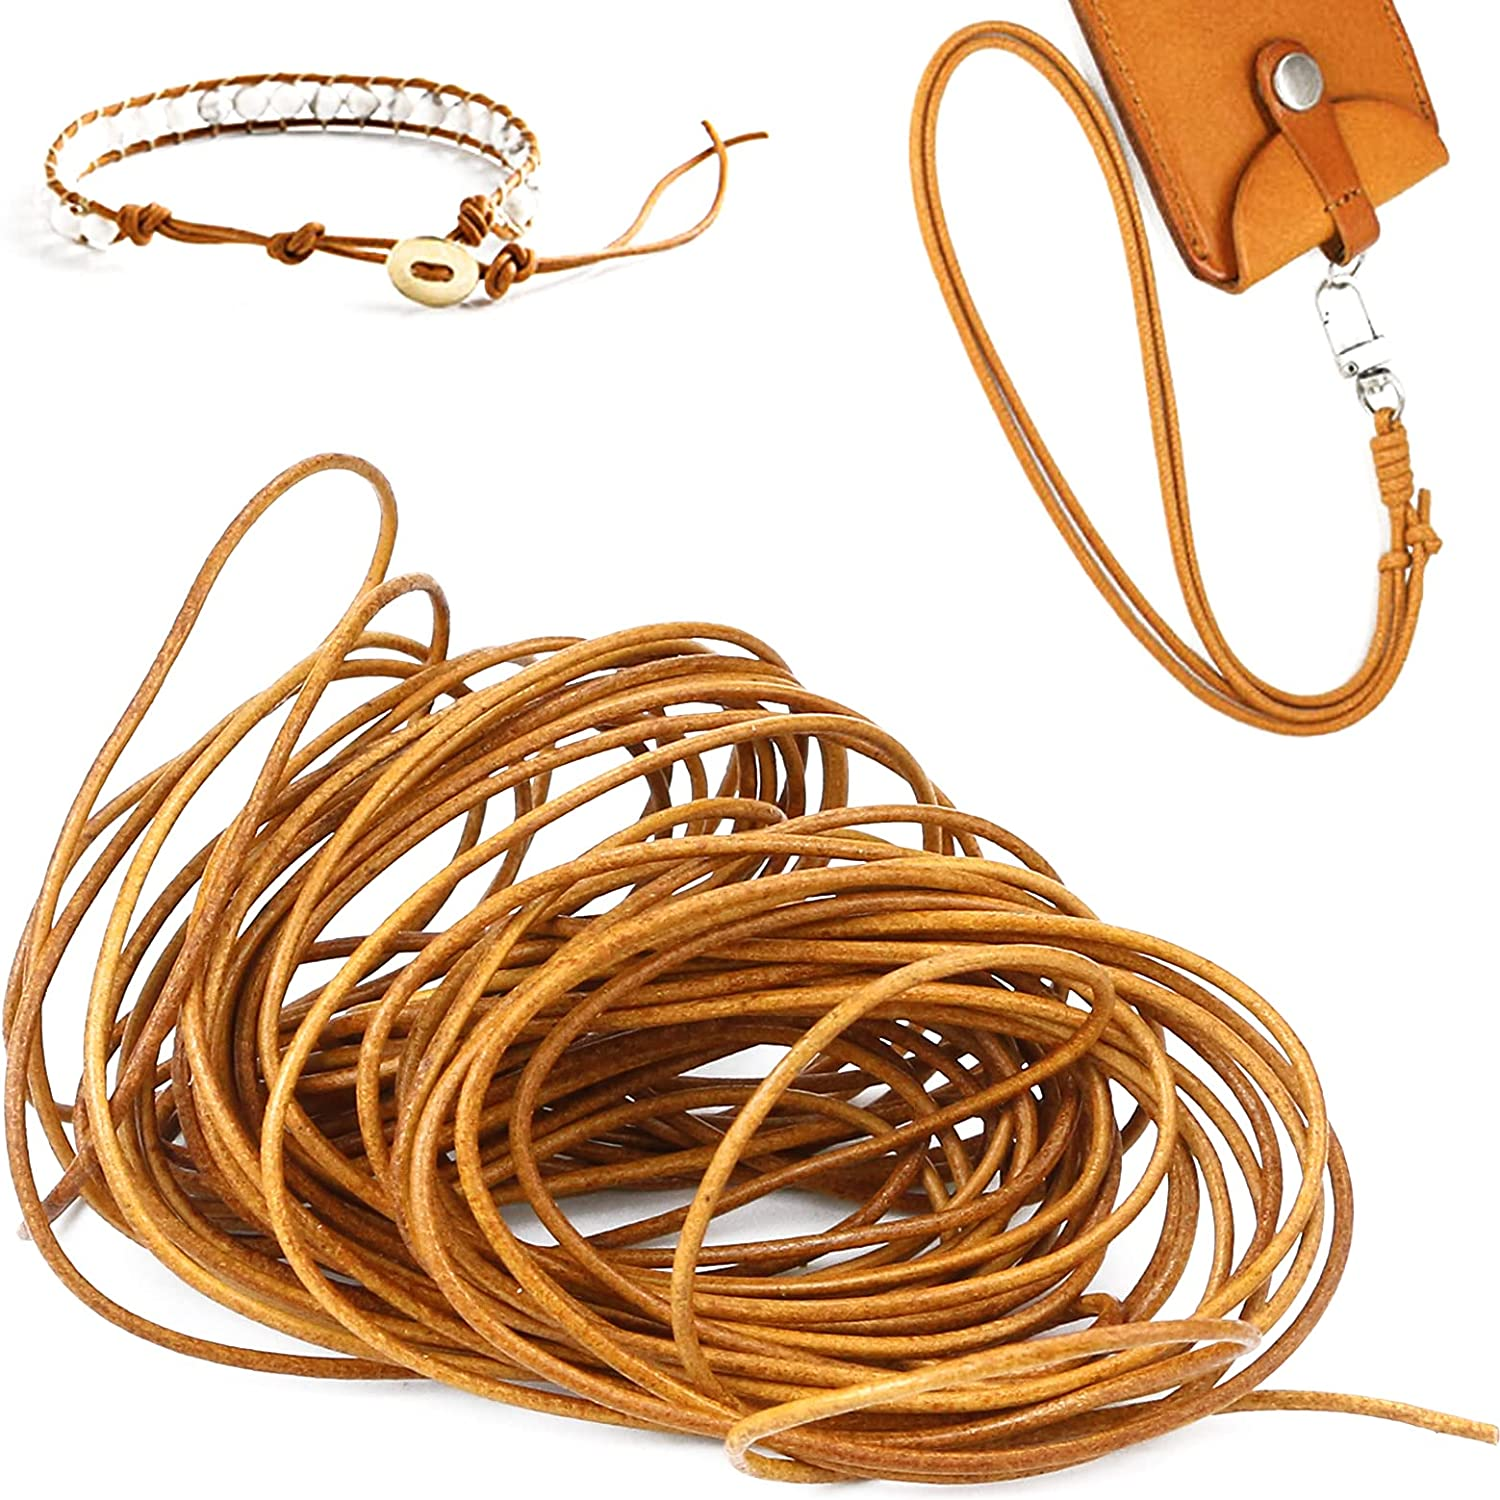 Fansunta Round Cowhide Genuine Leather String Cord, Natural Rawhide Rope, Genuine Round Leather Braiding, Craft Round Leather for Jewelry Making, Bracelet Necklaces Making (10Yards_ 2MM)